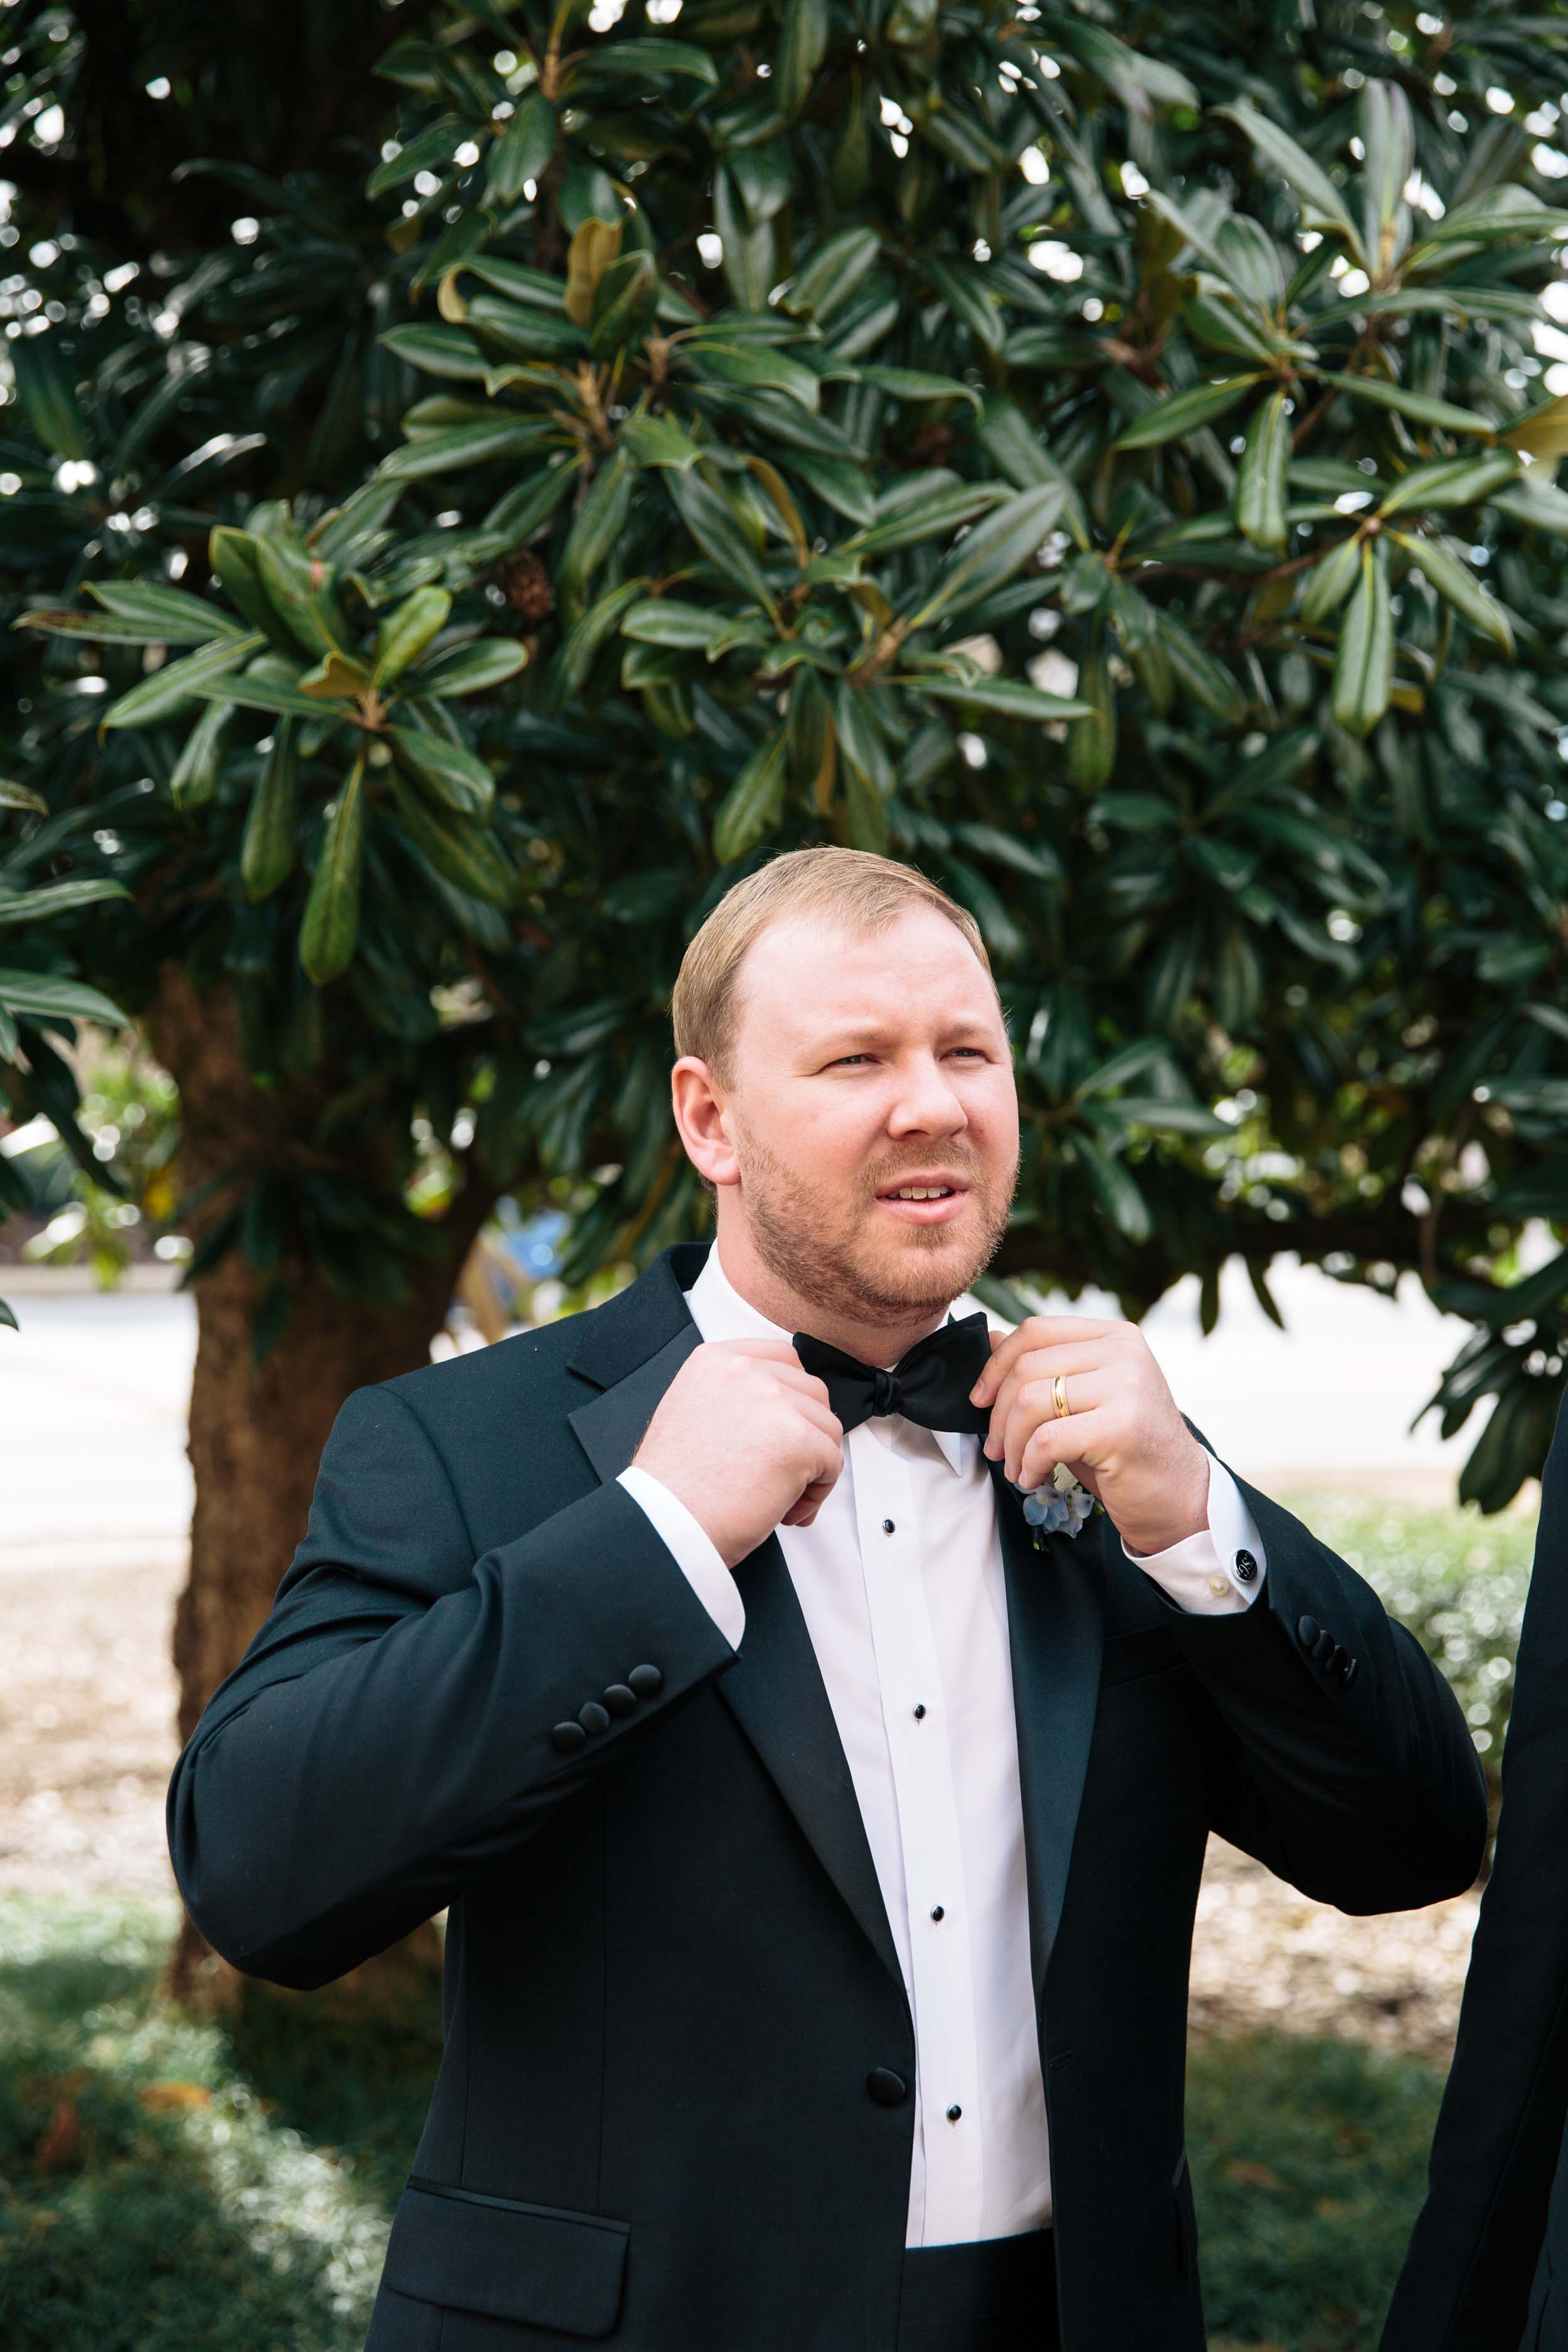 jimmy-rowalt-atlanta-wedding-photography-051.jpg